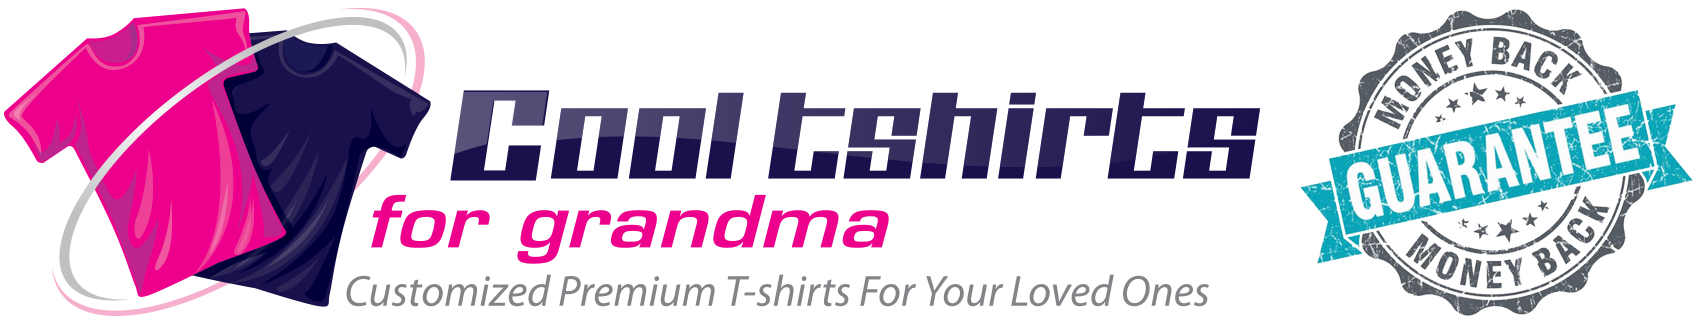 Cool T-Shirts for Grandma